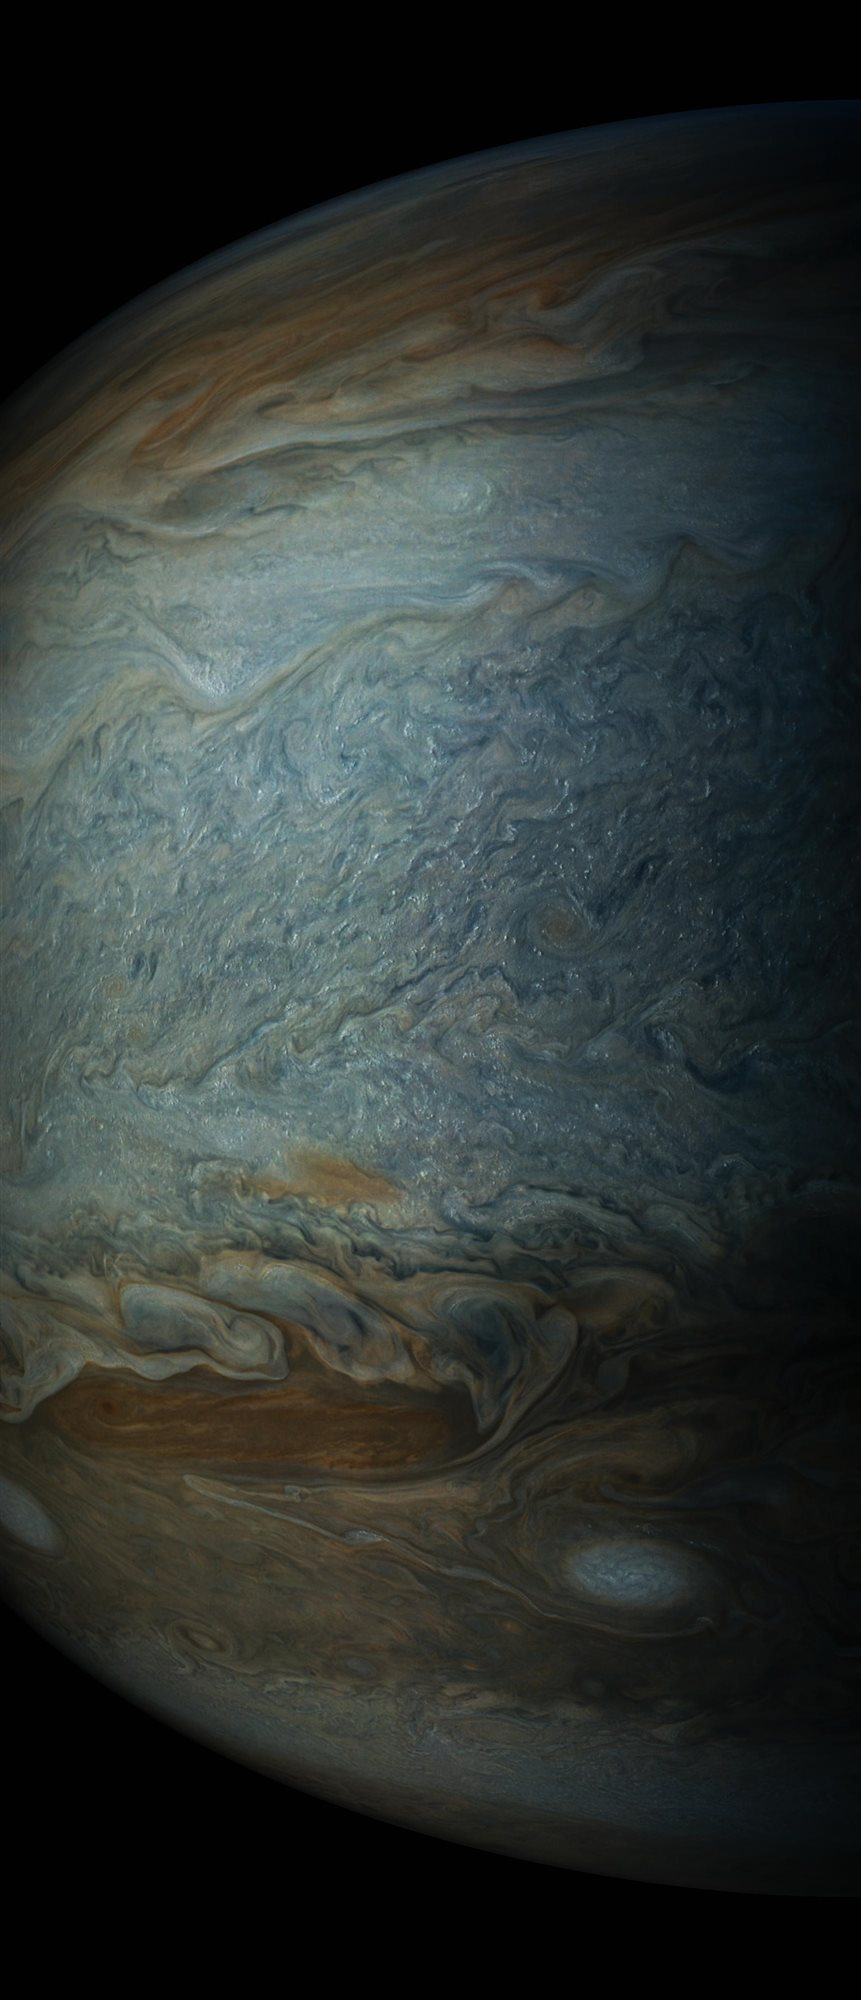 jupiter7. Nubes brillantes